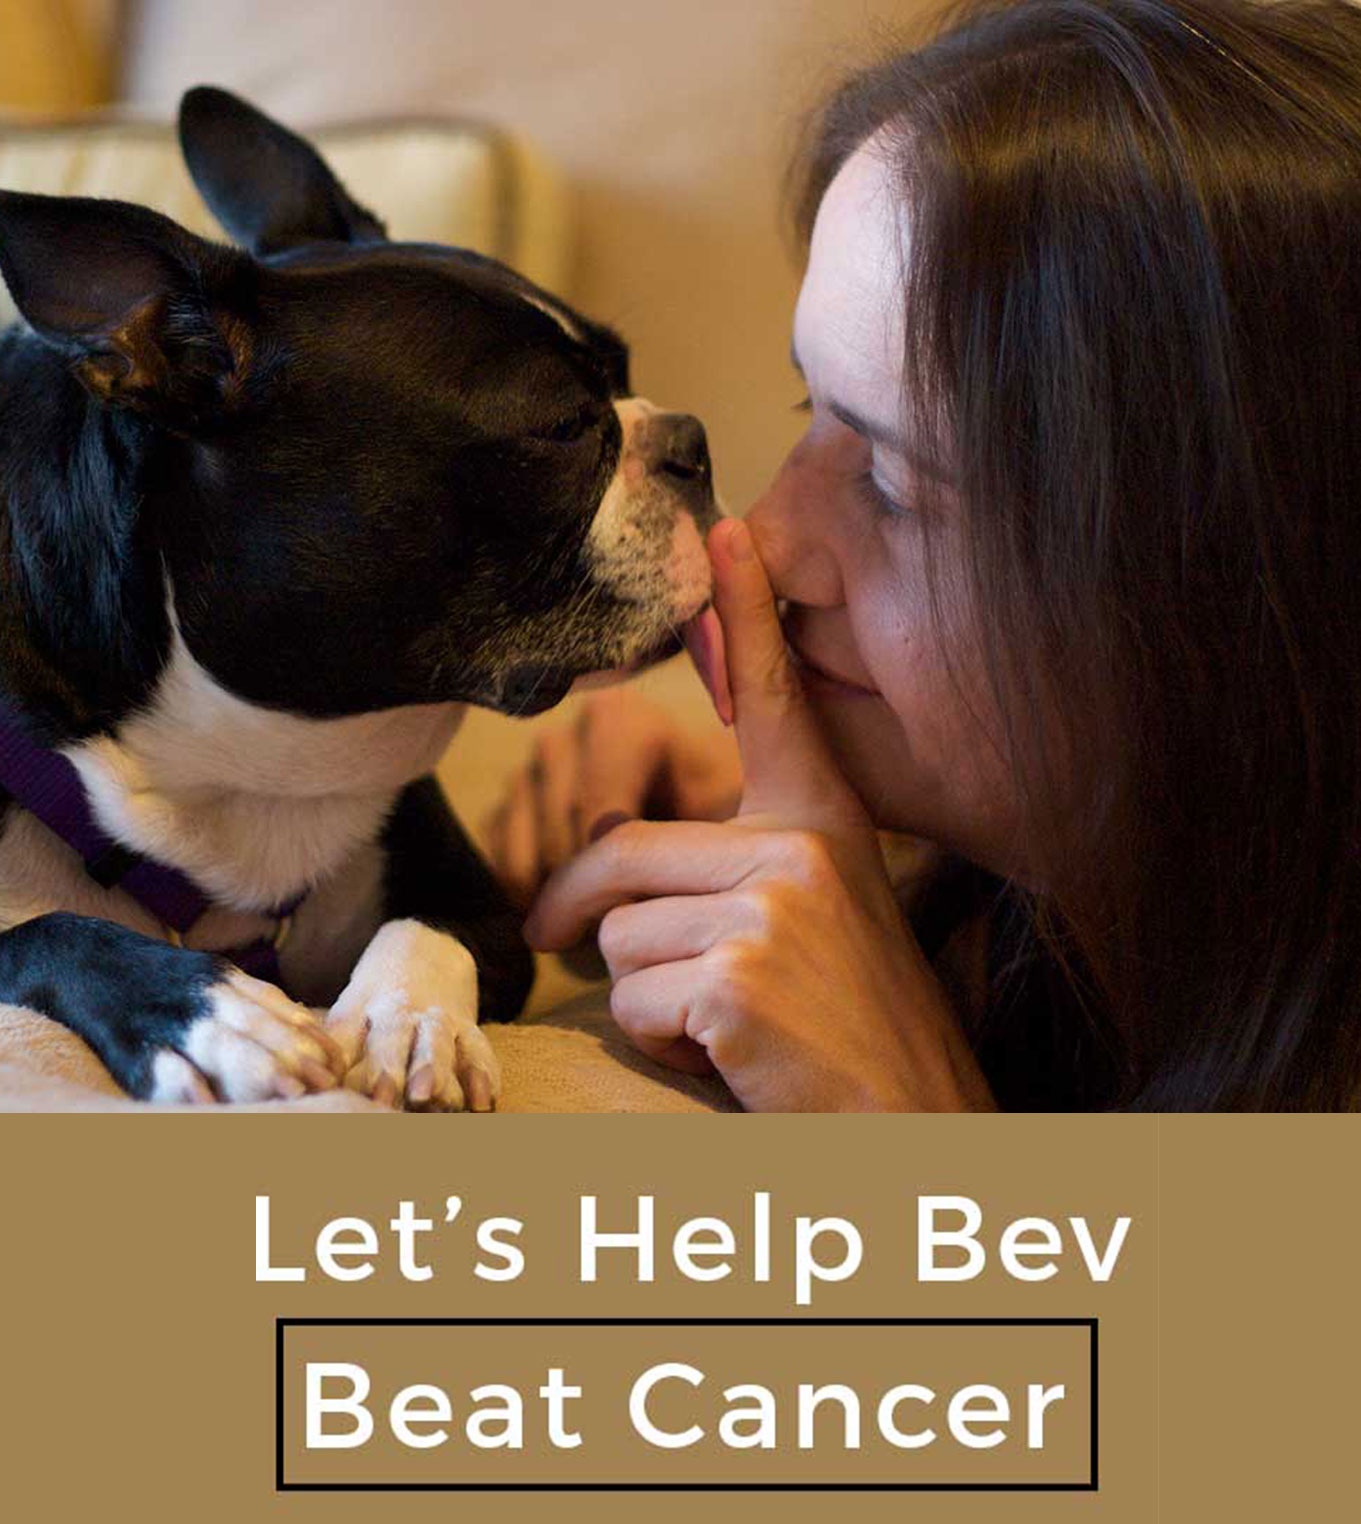 let;s-help-bev-beat-cancer